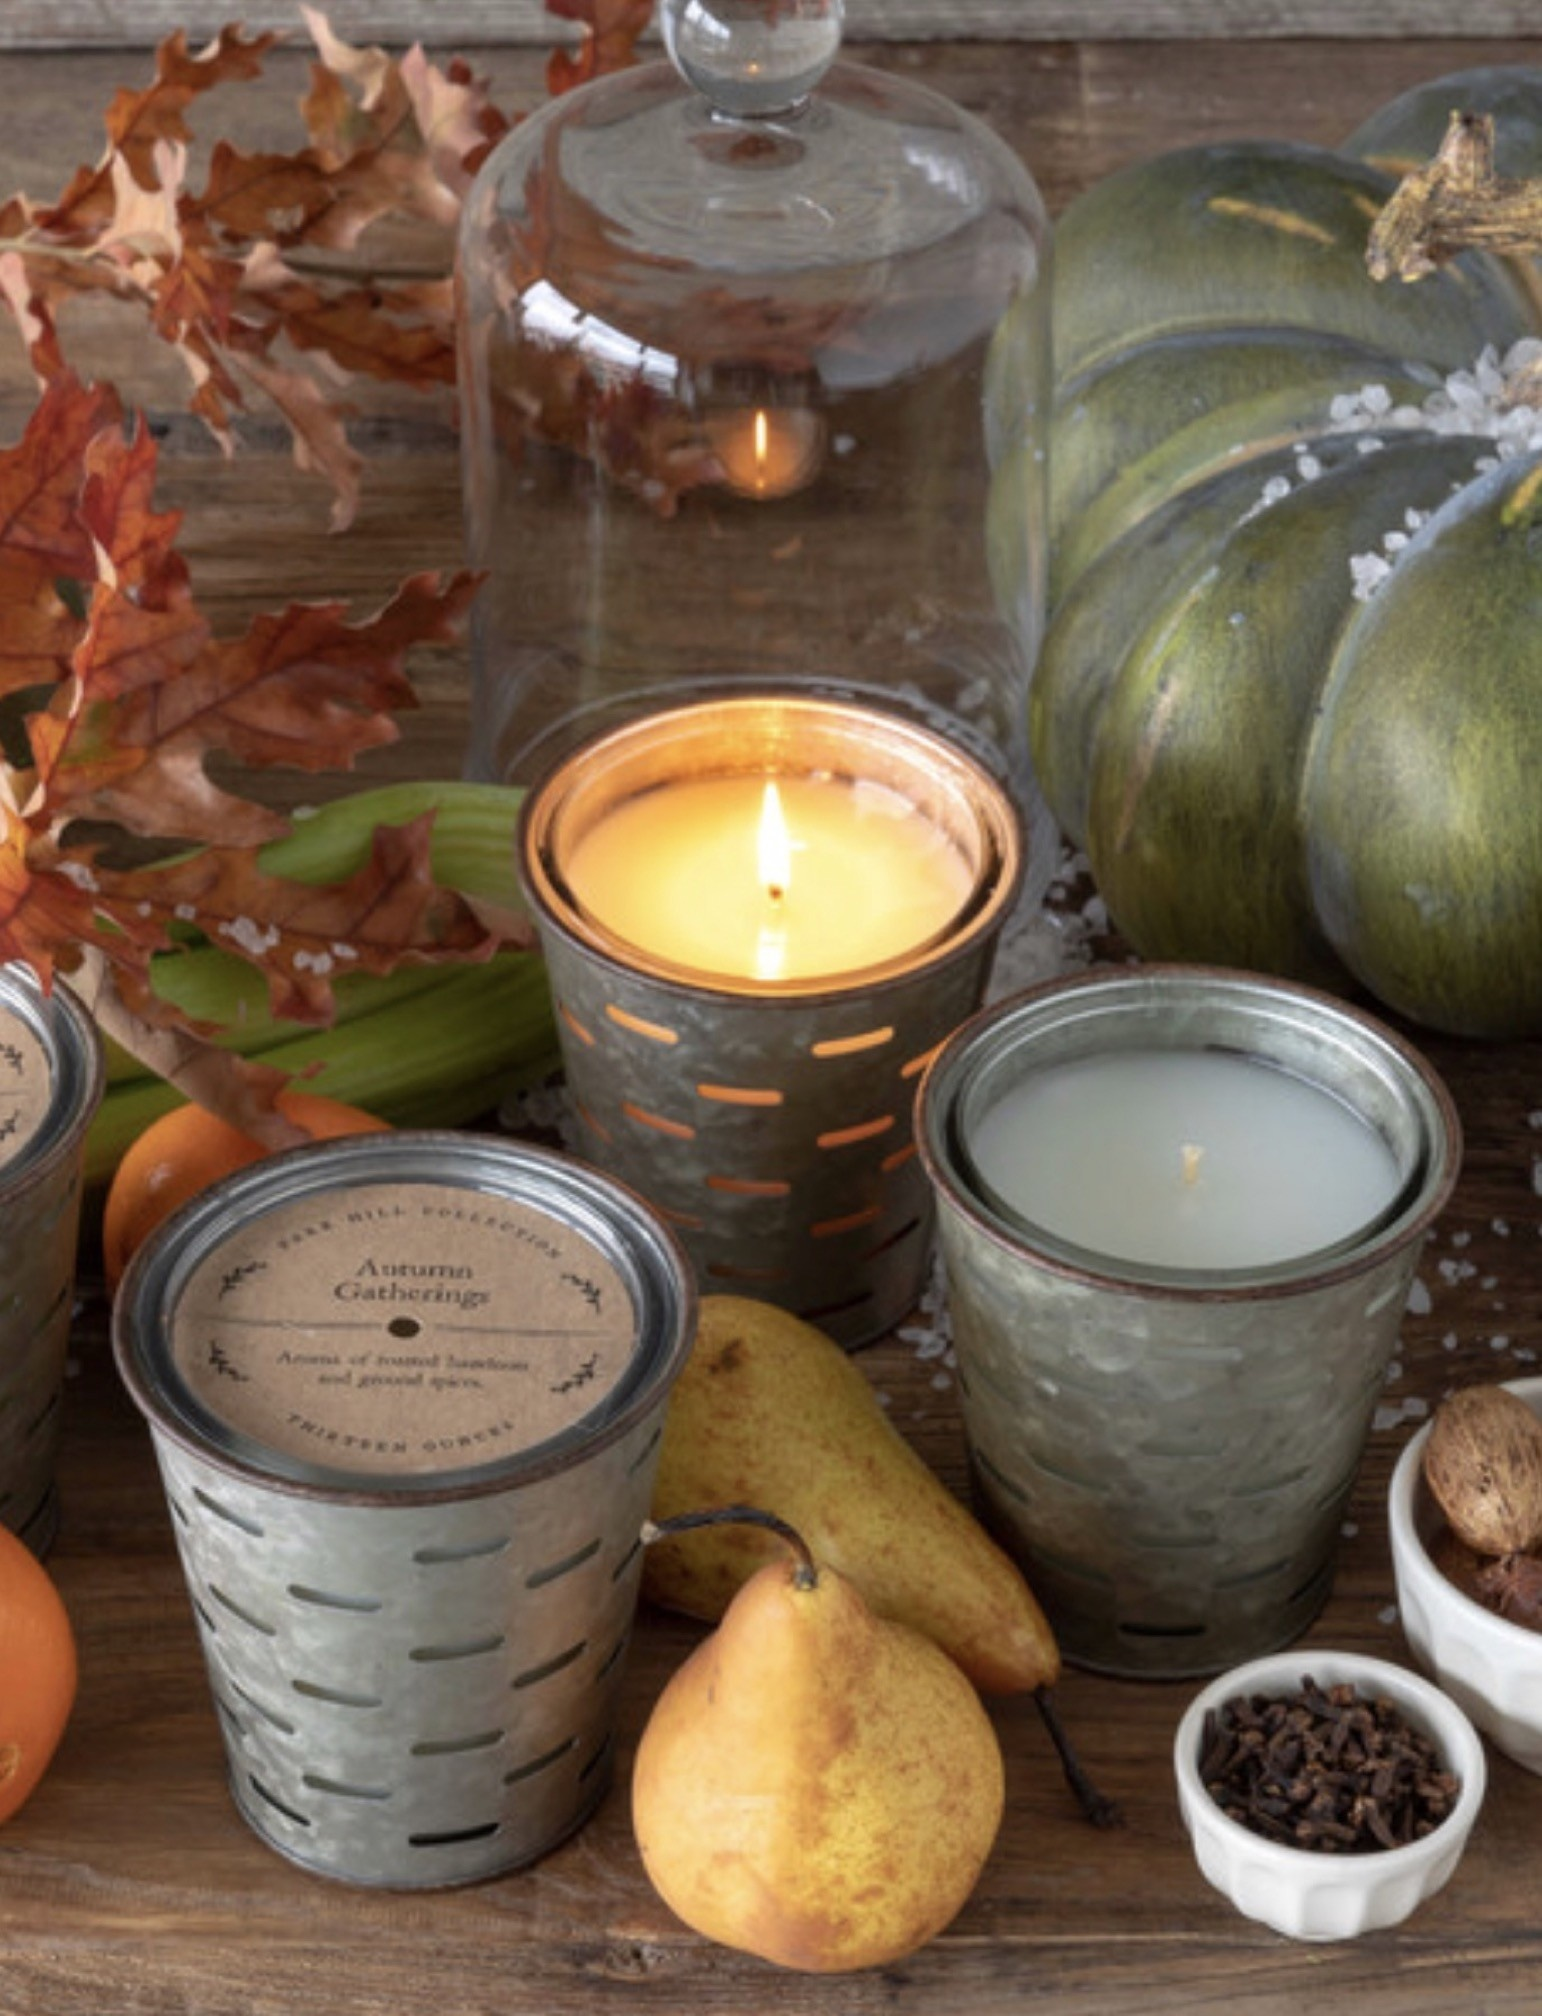 Park Hill Collection Pumpkin Roll Olive Bucket Fragrance Candle